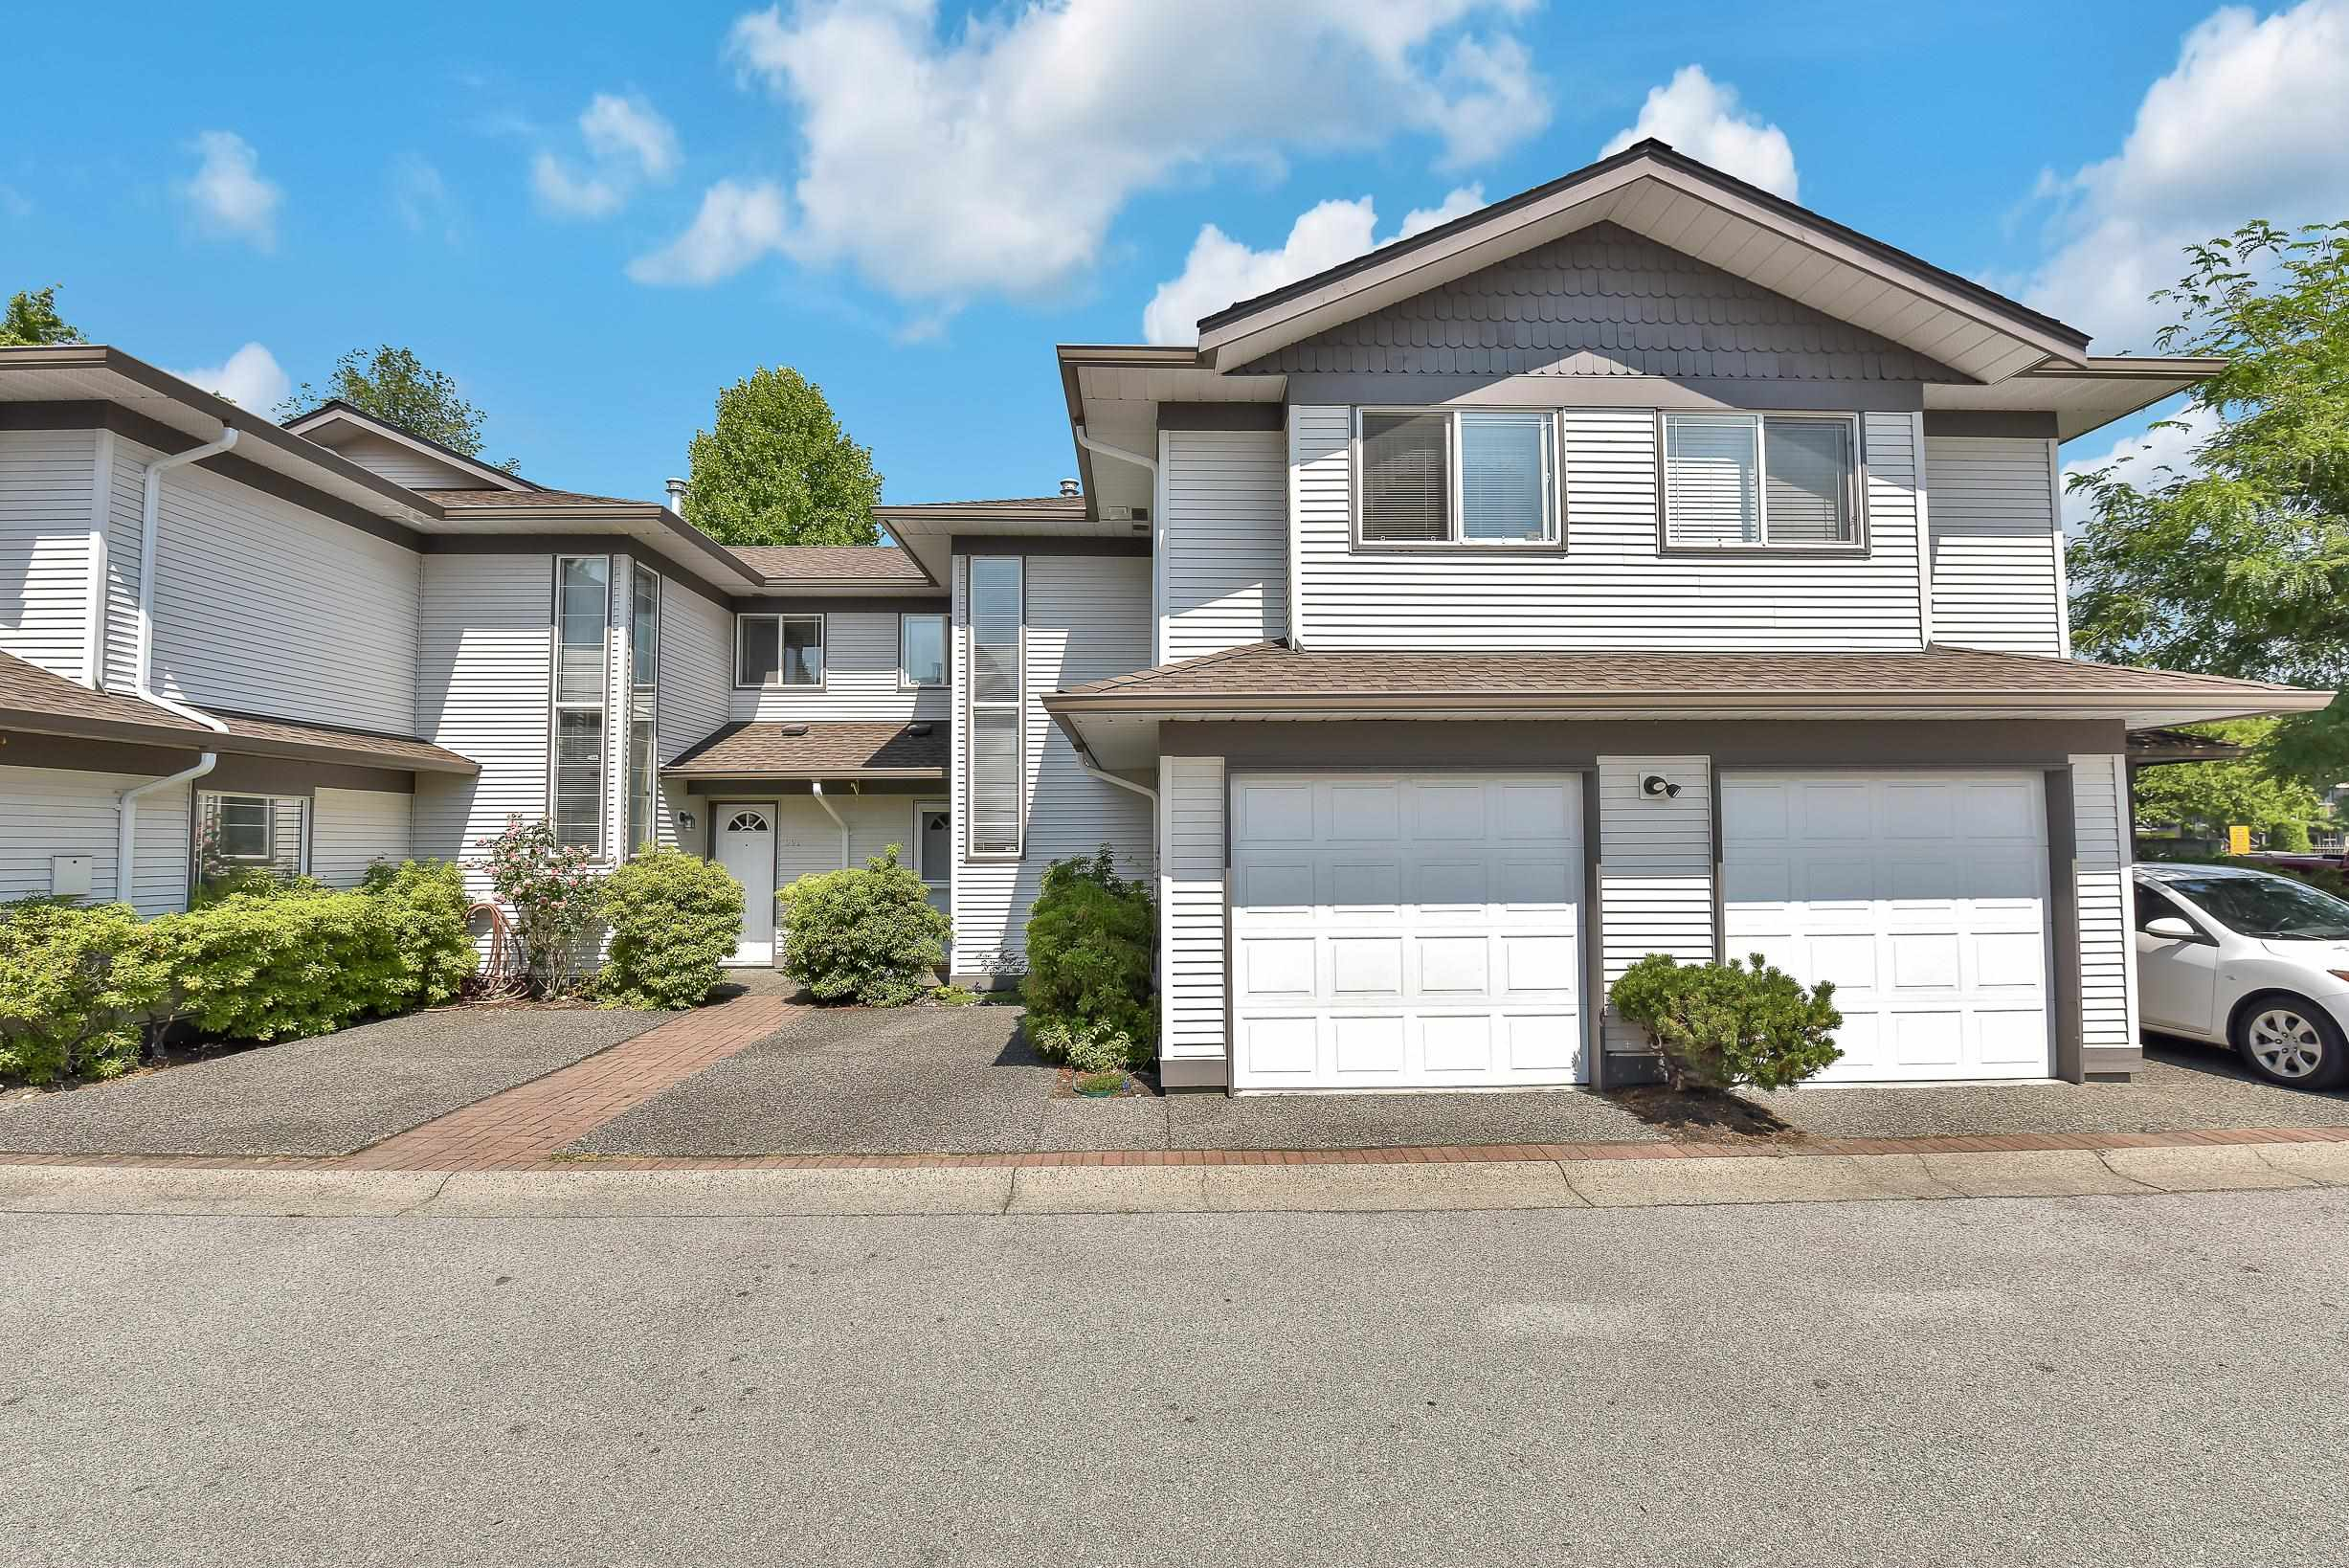 319 16233 82 AVENUE - Fleetwood Tynehead Townhouse for sale, 3 Bedrooms (R2606826)